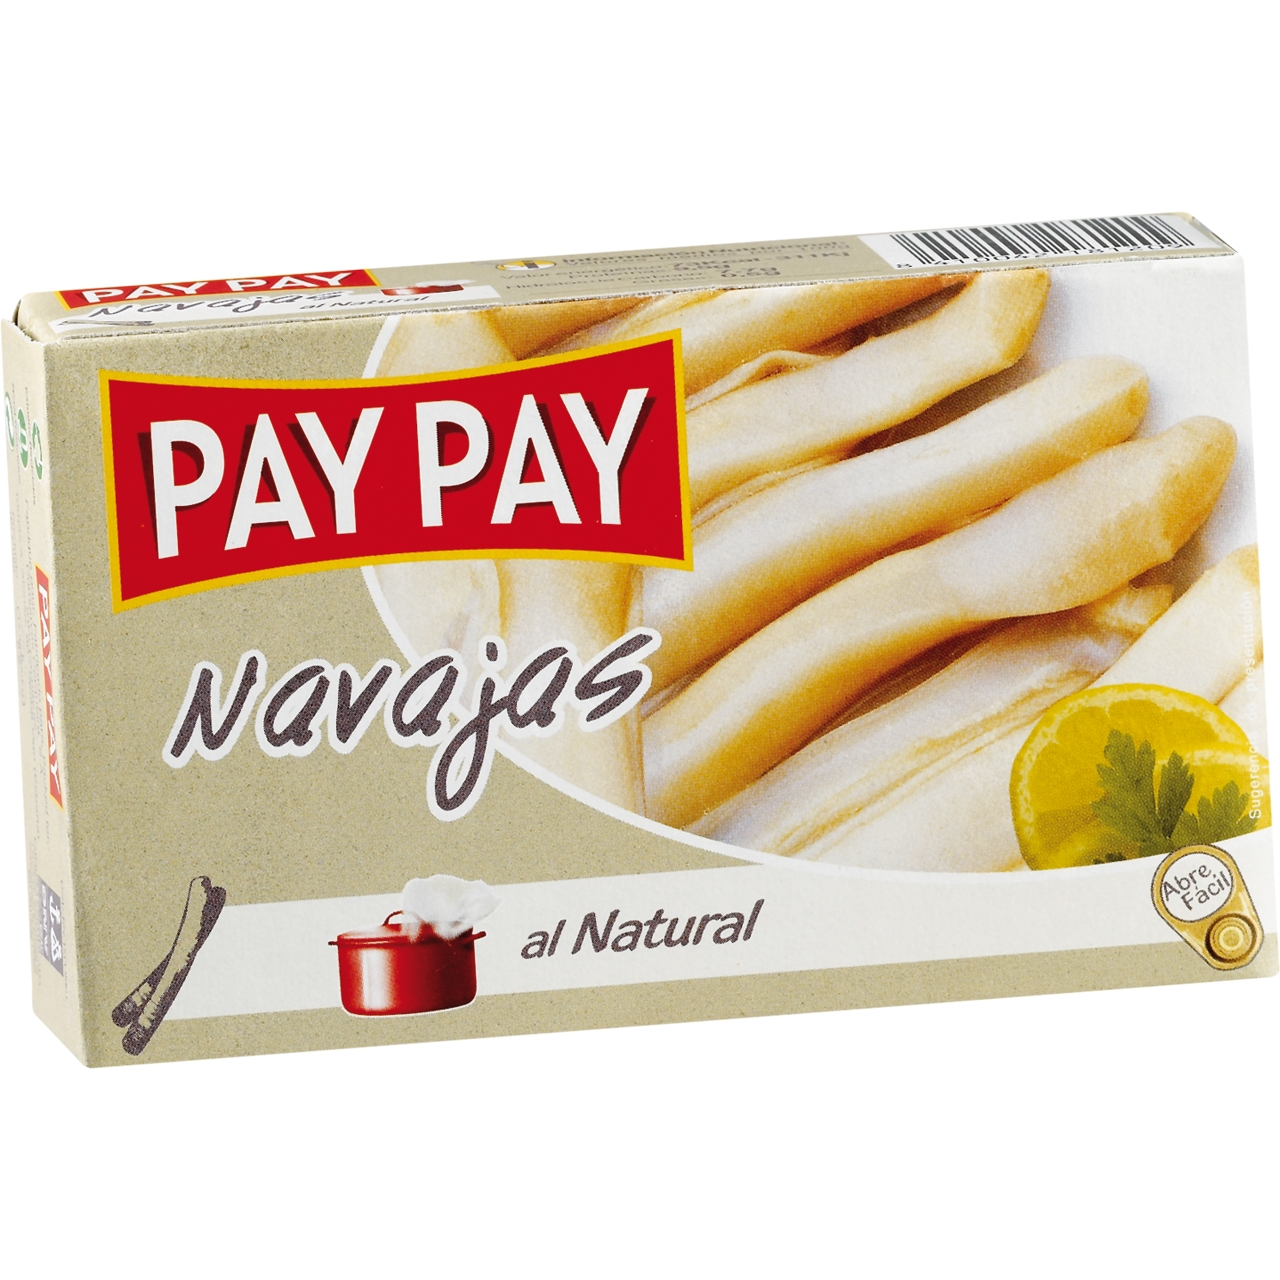 Navajas al natural OL 120 F.O. Pay Pay